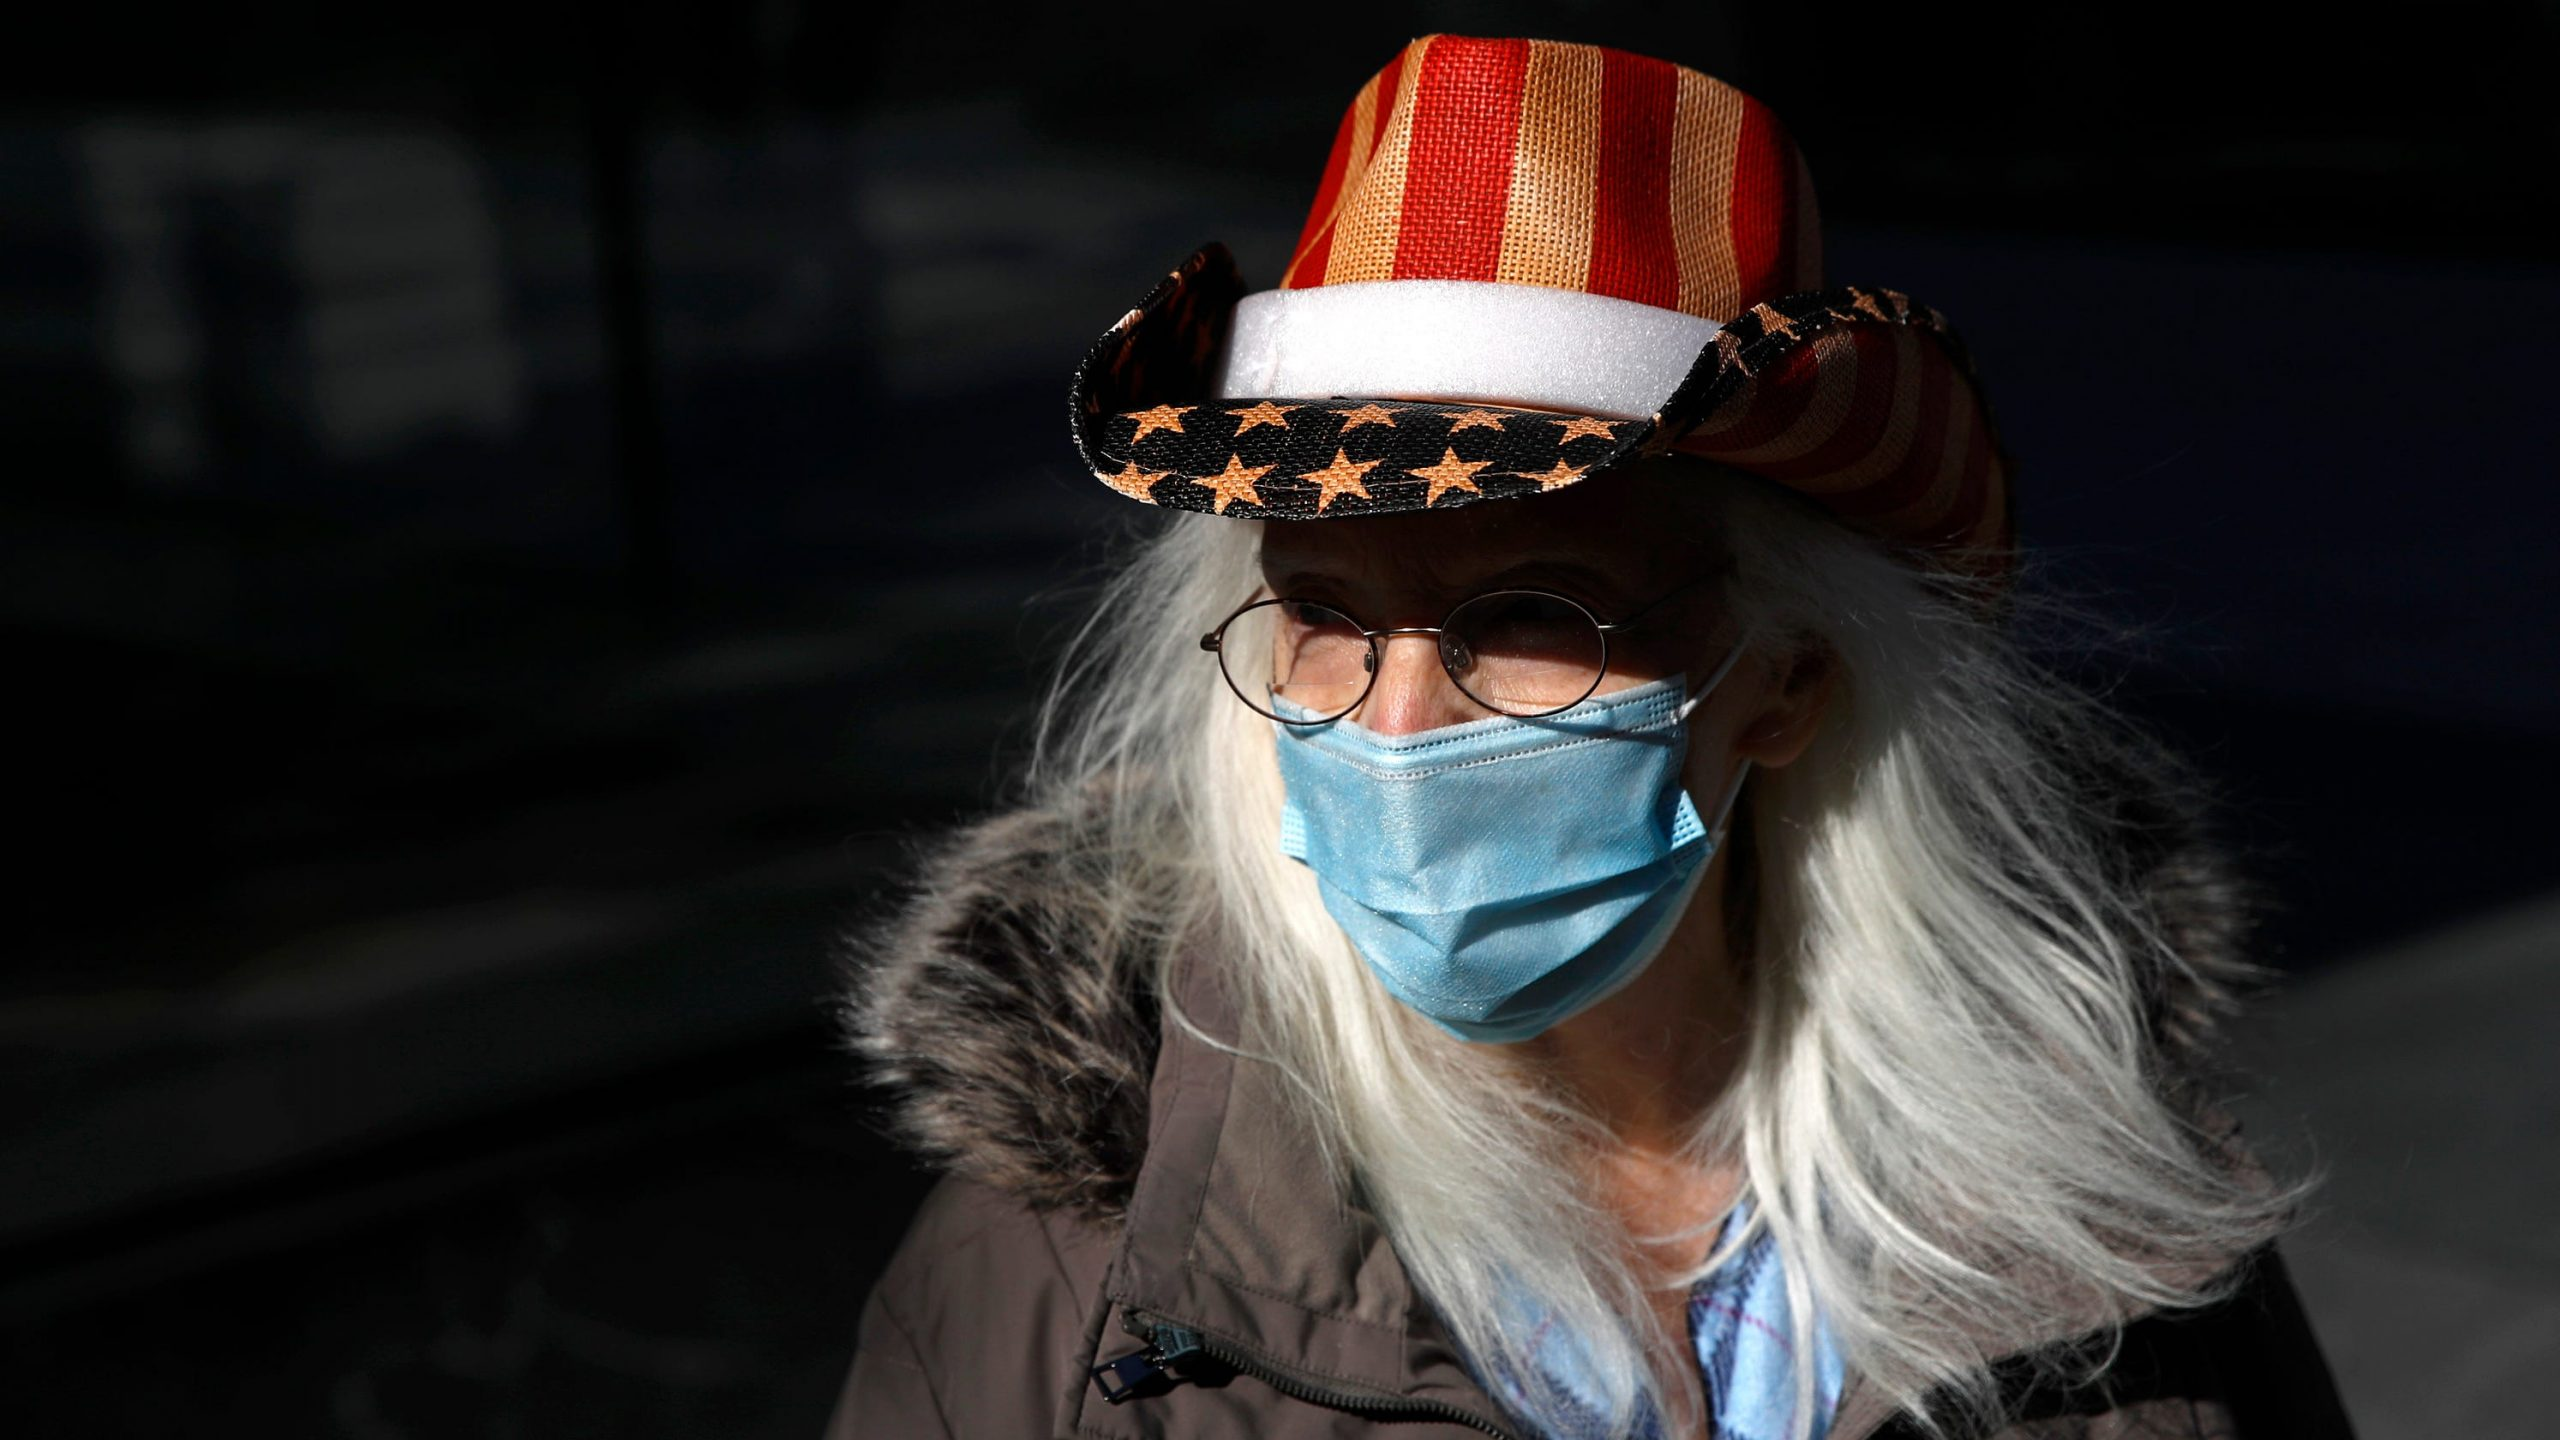 Coronavirus live updates: Unemployment claims boom; Trump to reveal standards for reopening economy; United States deaths near 31K